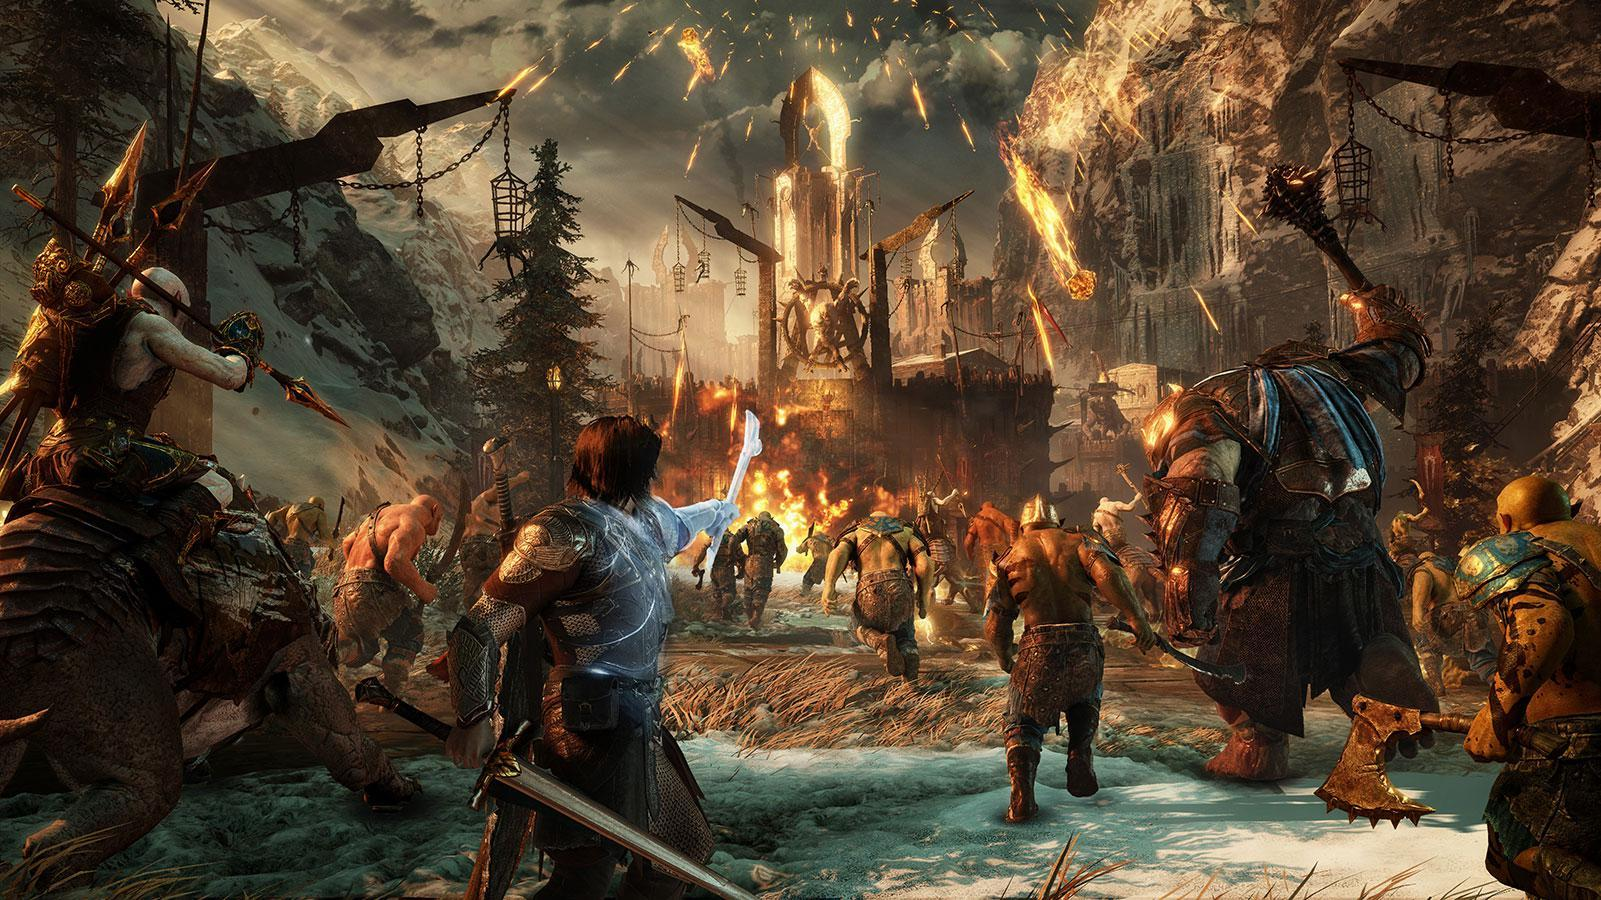 cda19ecbc7b02b0e60238f1d4540a063 Where's cheapest for Middle Earth: Shadow of War before Christmas? Best prices for PS4, Xbox One and PC at Amazon, Argos, Tesco and others